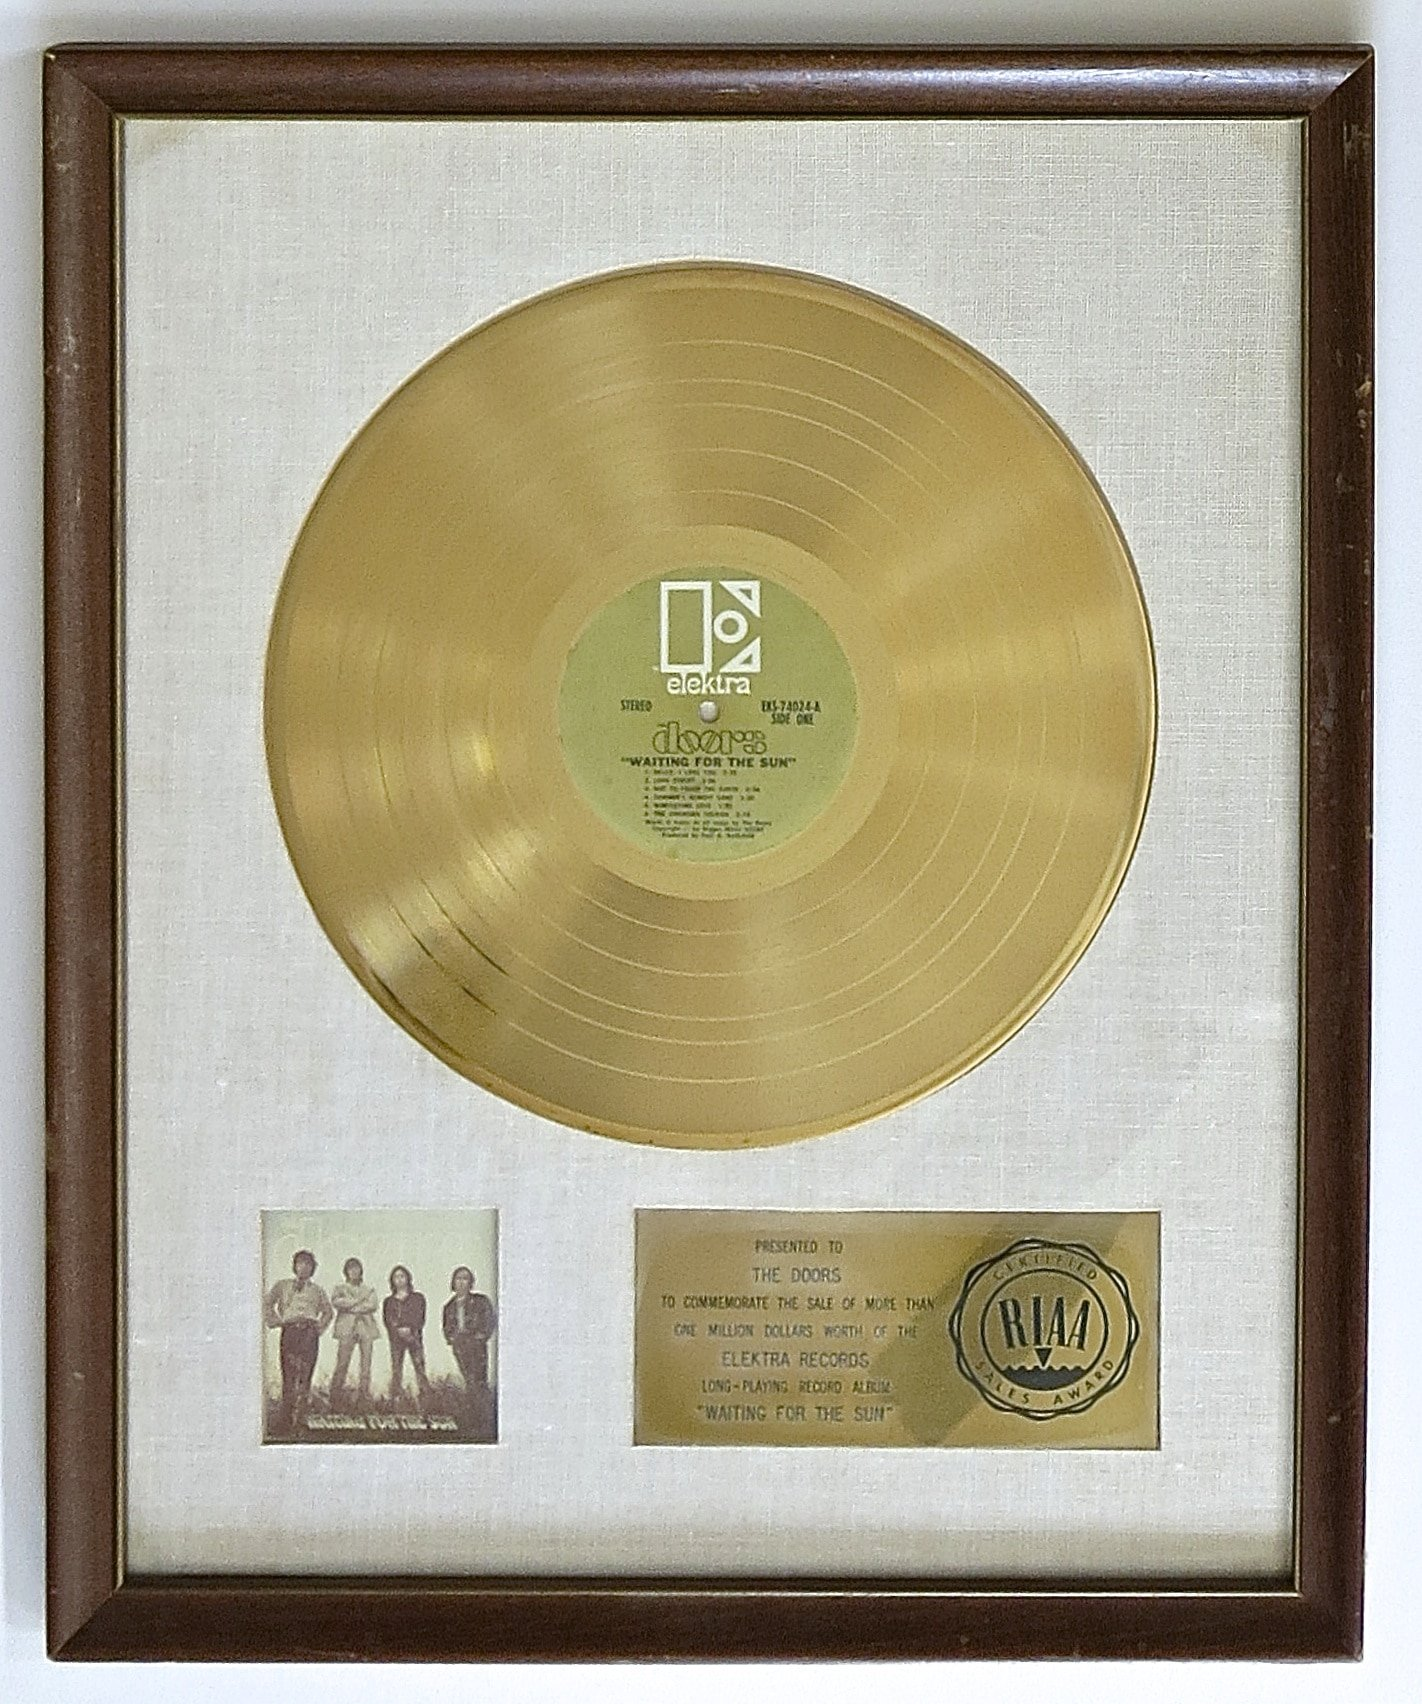 The Doors u2013 White Matte Gold Record Award Presented to The Doors for u201cWaiting For The Sunu201d & The Doors u2013 White Matte Gold Record Award Presented to The Doors for ...